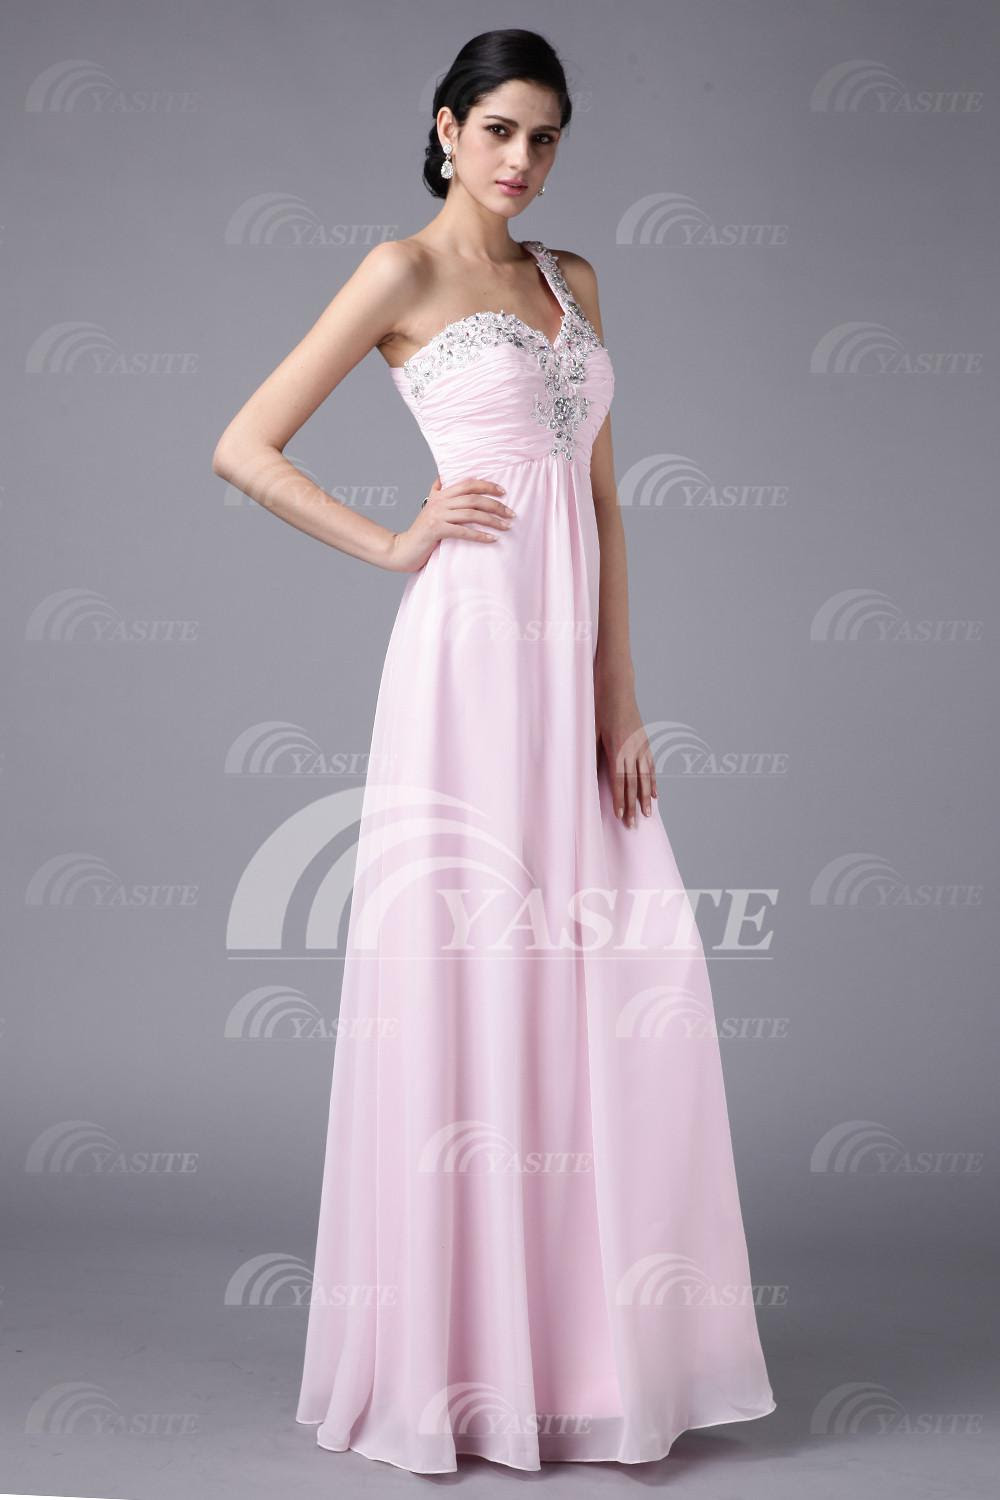 Pale pink evening dresses